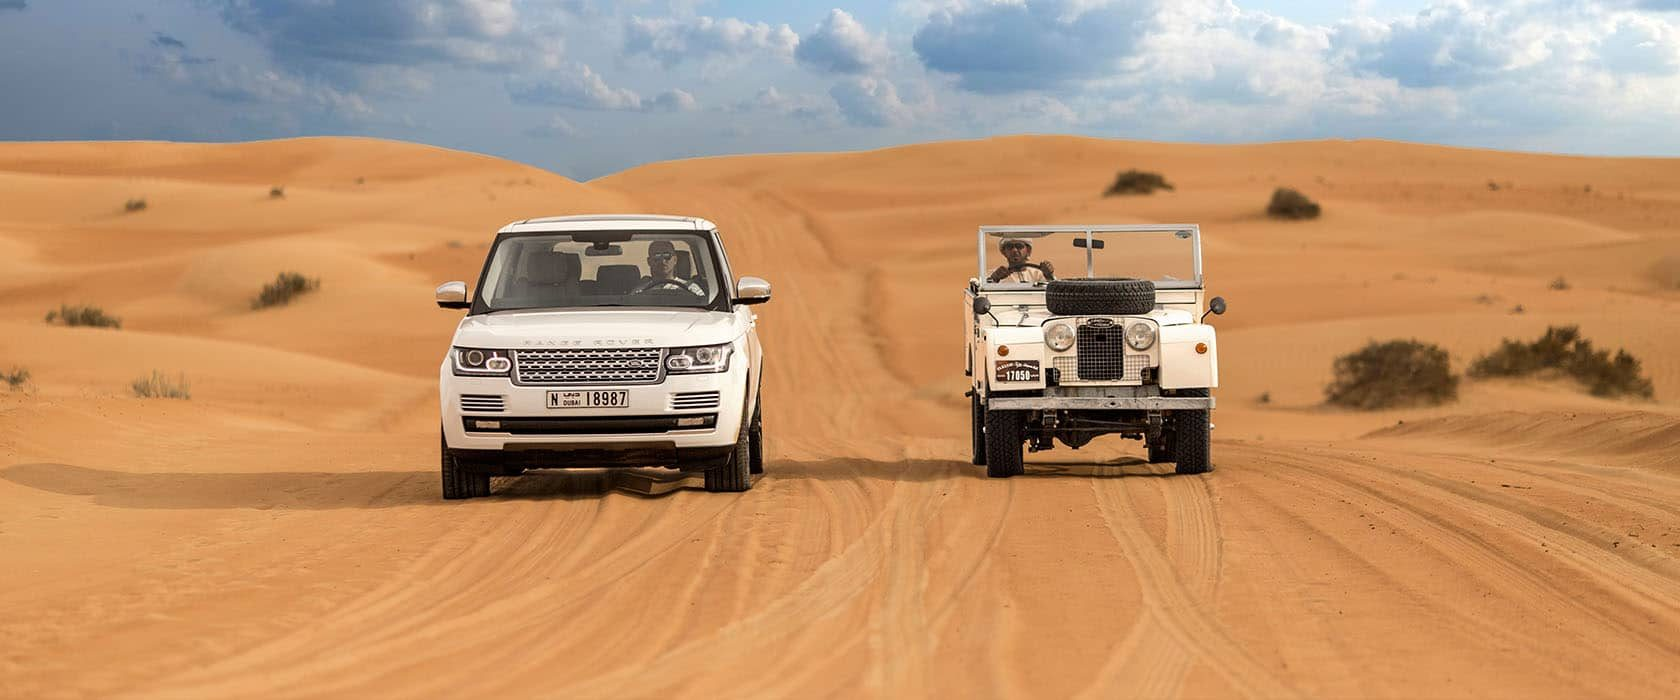 Luxury desert safari in the Dubai Desert Conservation Reserve